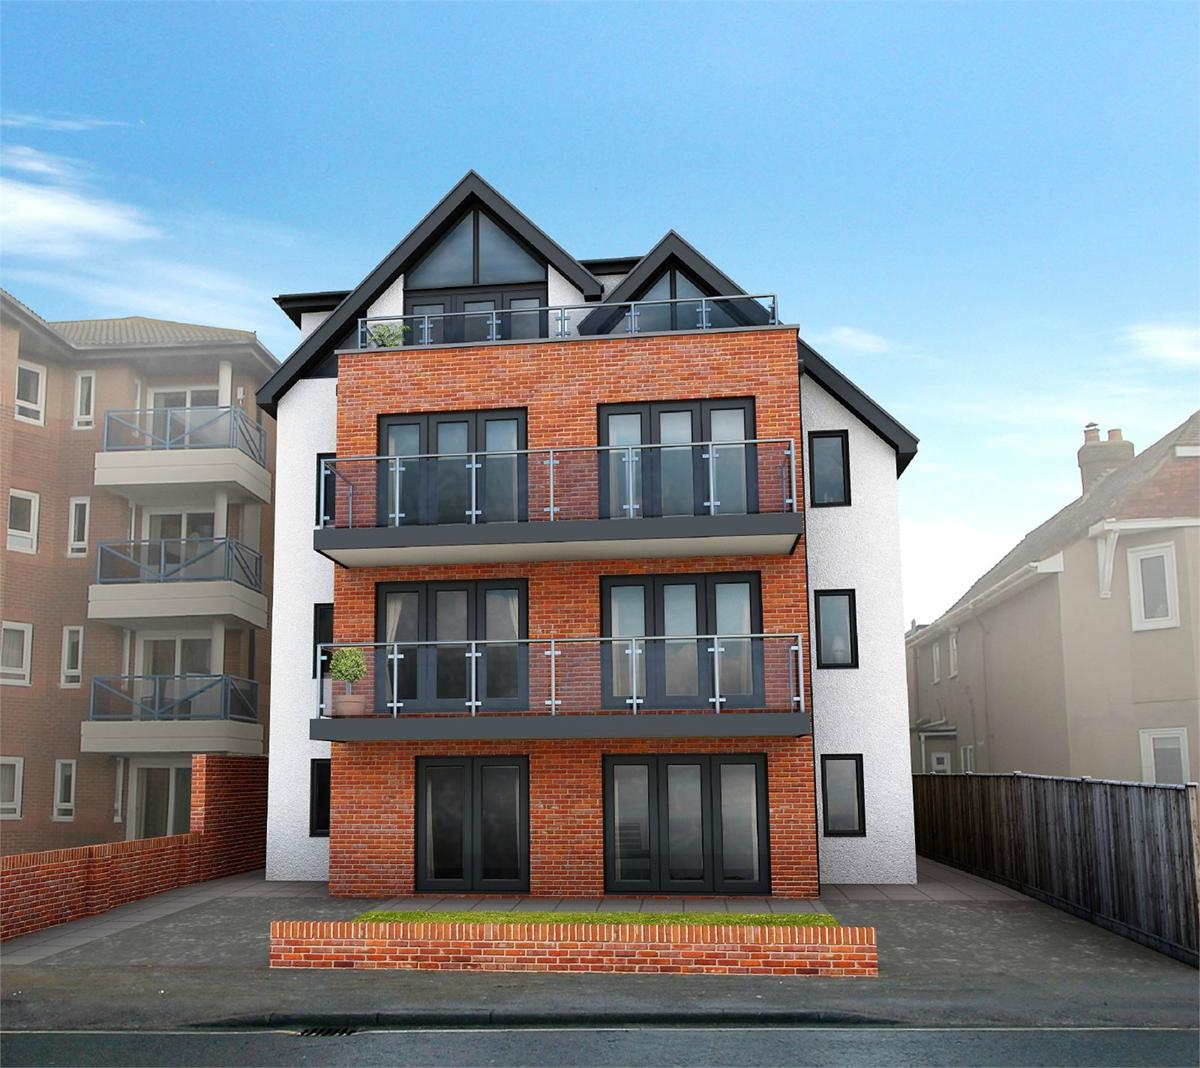 Plot 2, Lee on the Solent, PO13 9BW